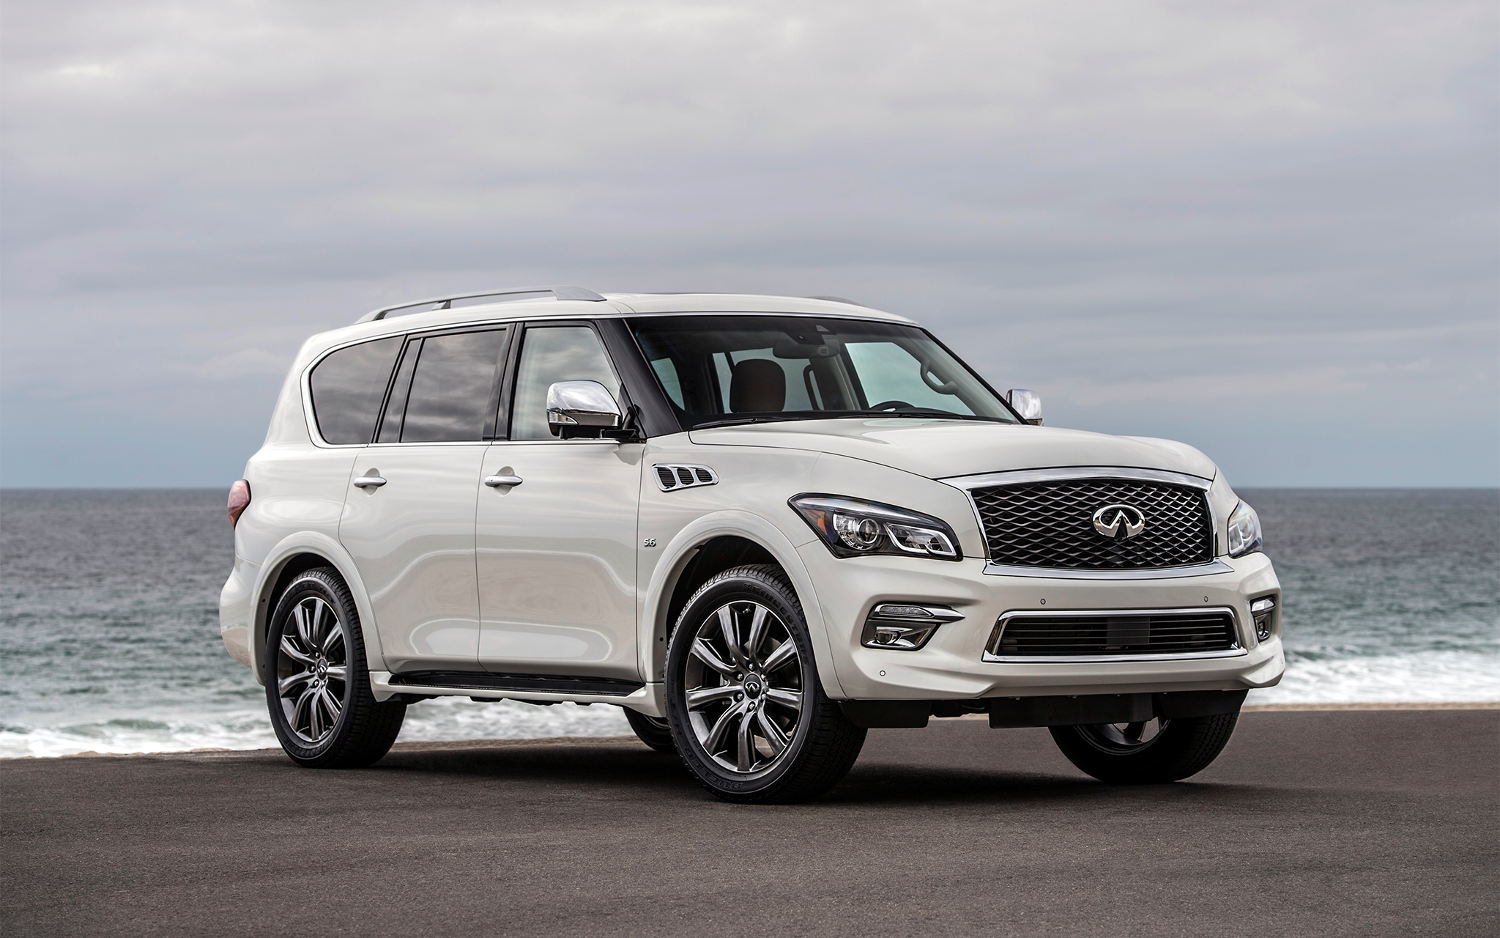 smart usa l shot vehicles crossovers jpg infiniti full rolling crossover ximg suv m